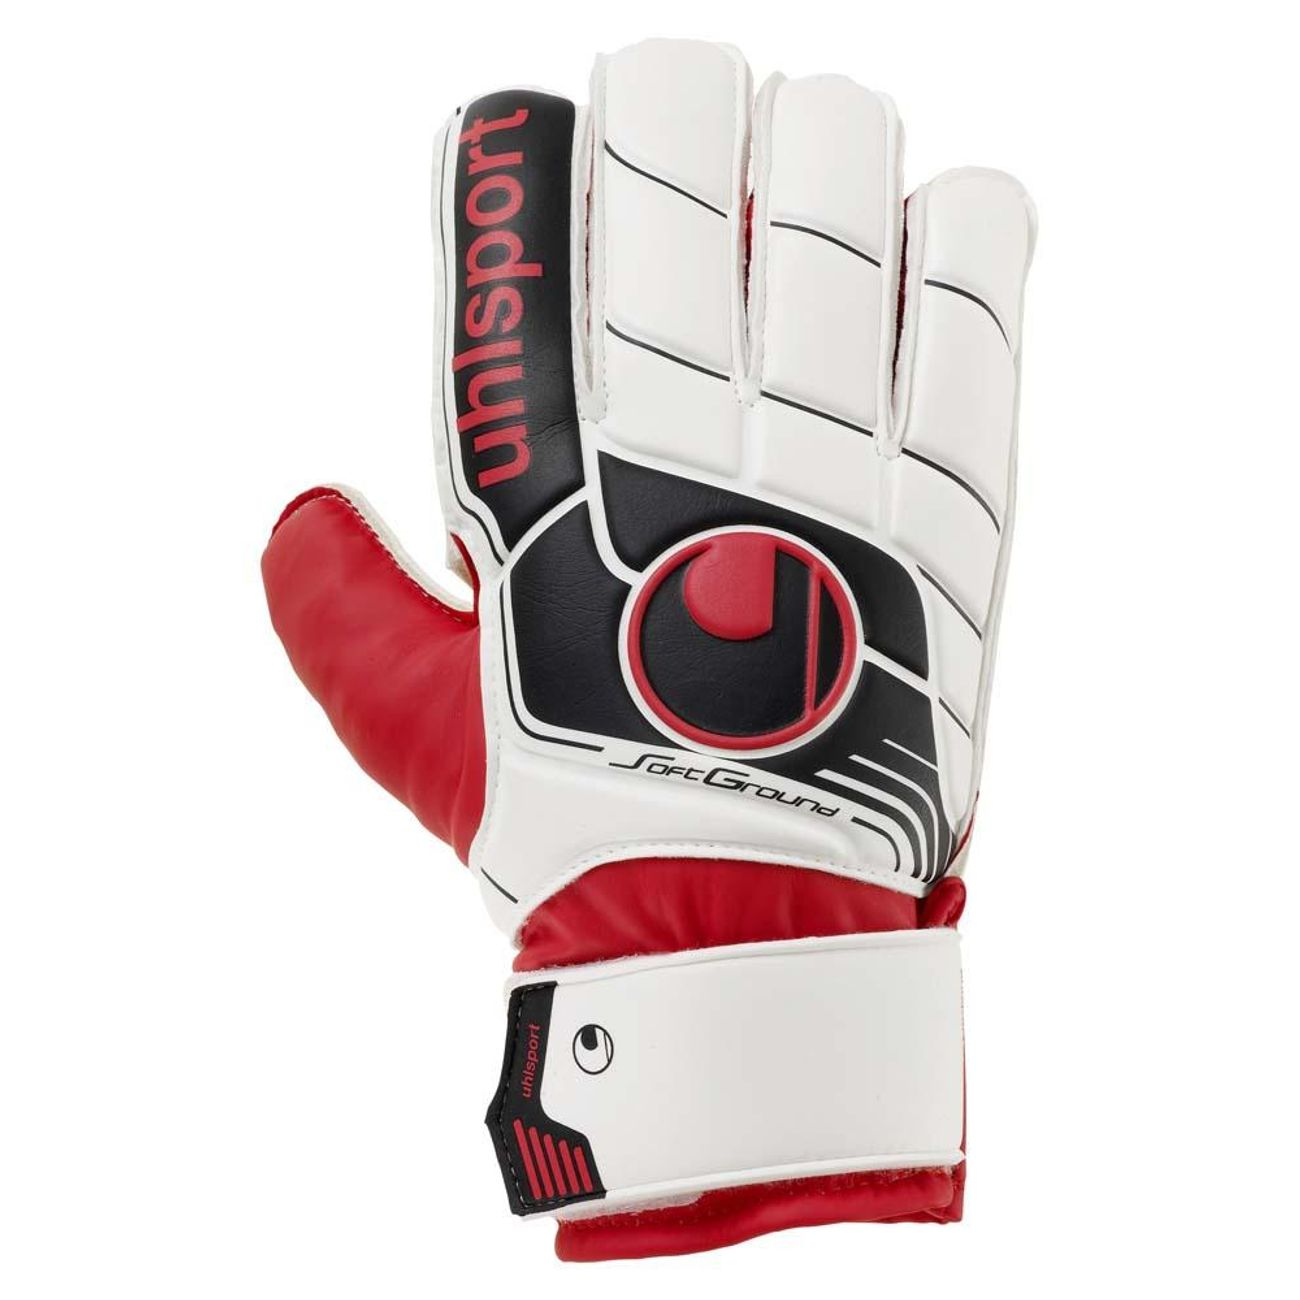 Starter Football Uhlsport Adulte Fangmaschine Soft zqLUVSMpG